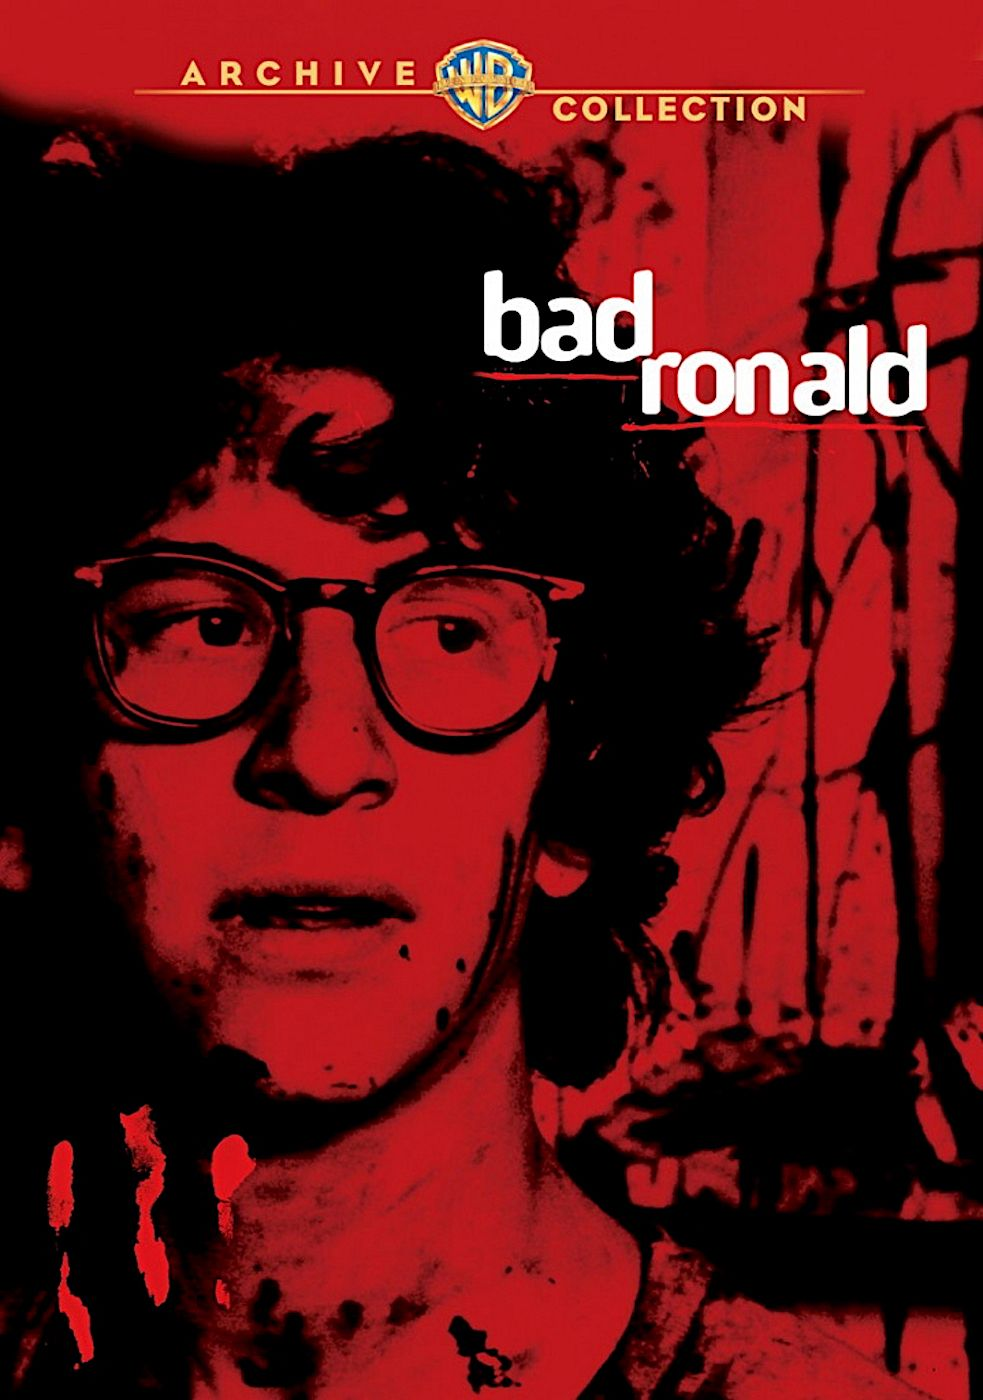 BAD RONALD DVD Ronald, Dvd, Cool things to buy